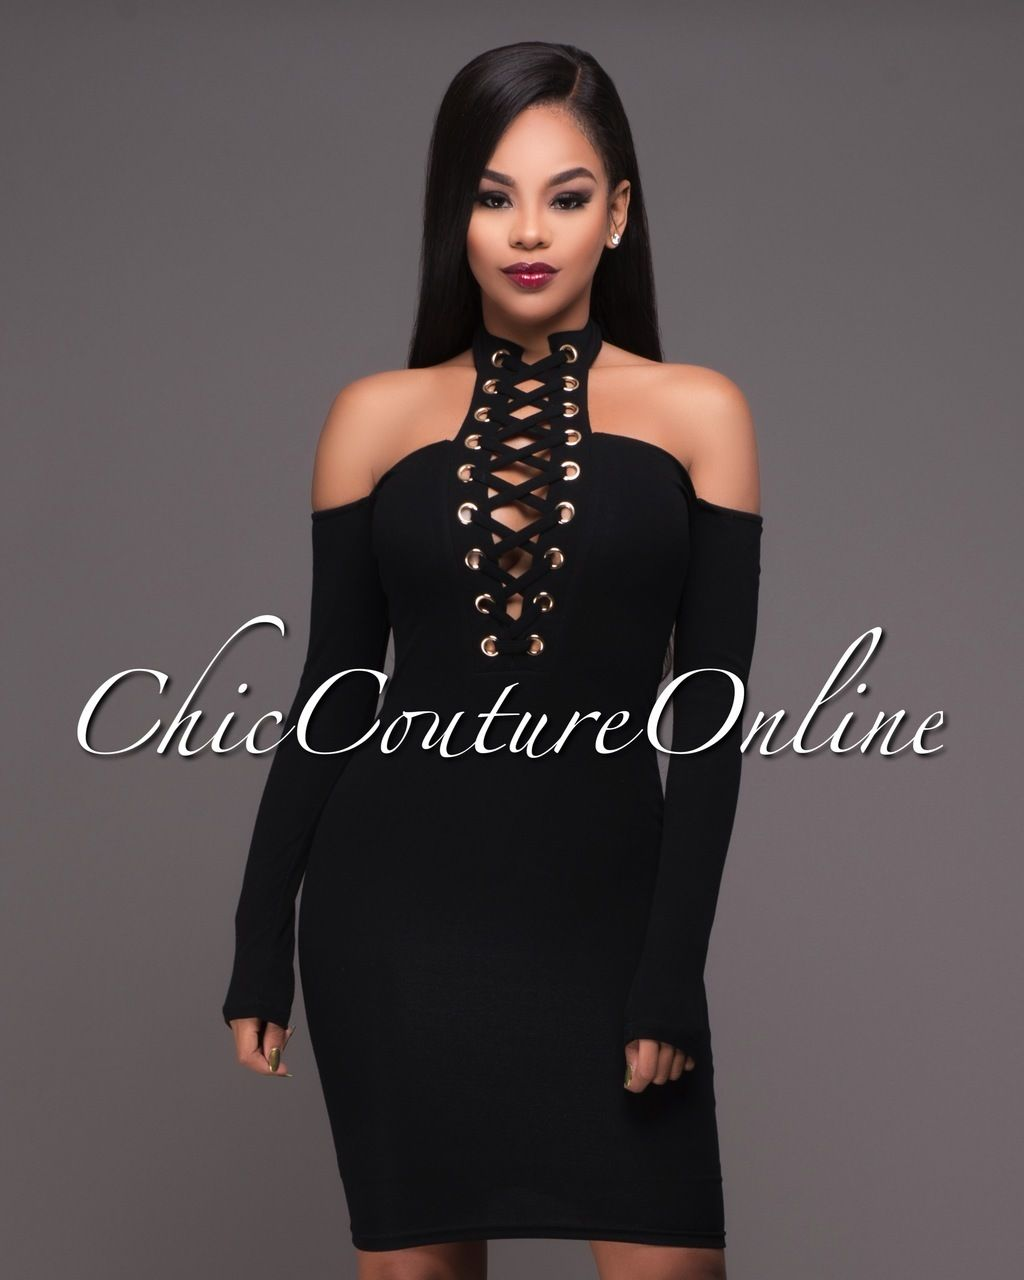 Terriska Black Cut-Out Shoulders Dress. Chic Couture OnlineSexy Outfits Kitchen ...